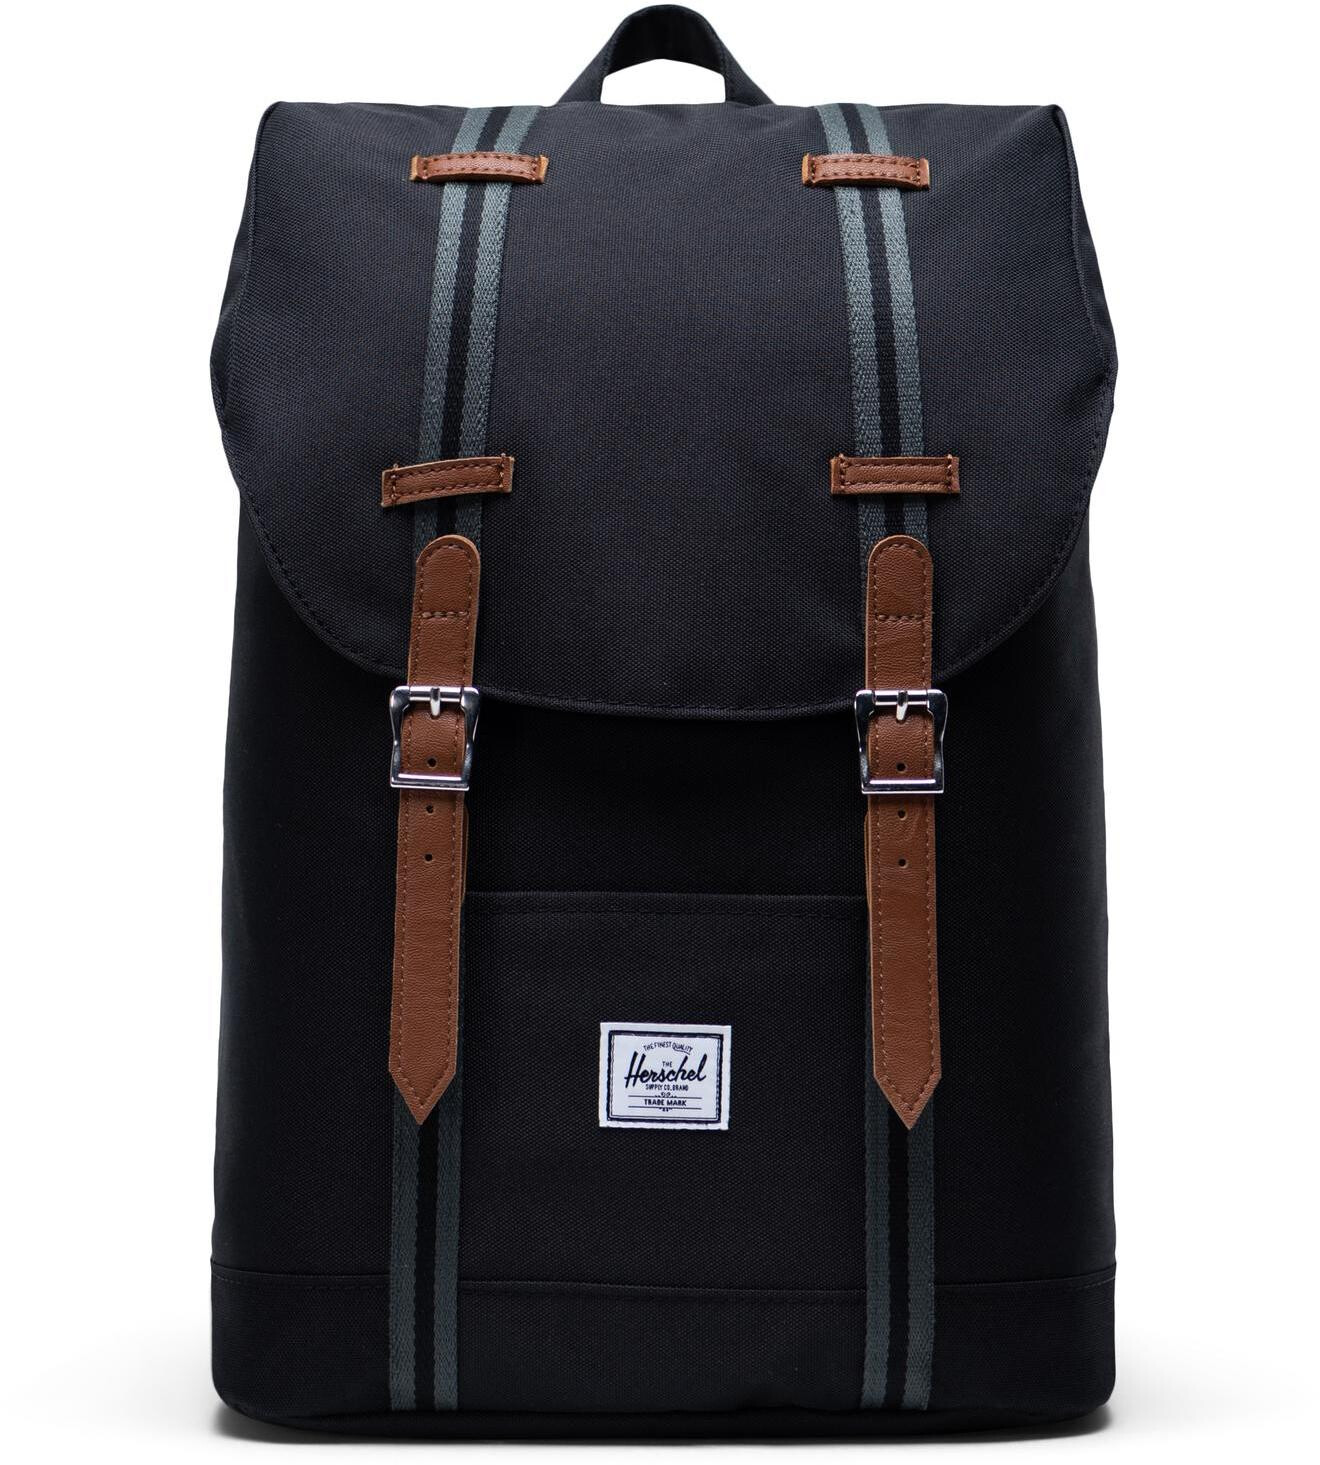 Herschel Retreat Mid-Volume Rygsæk 14l, black/black/tan (2019) | Travel bags